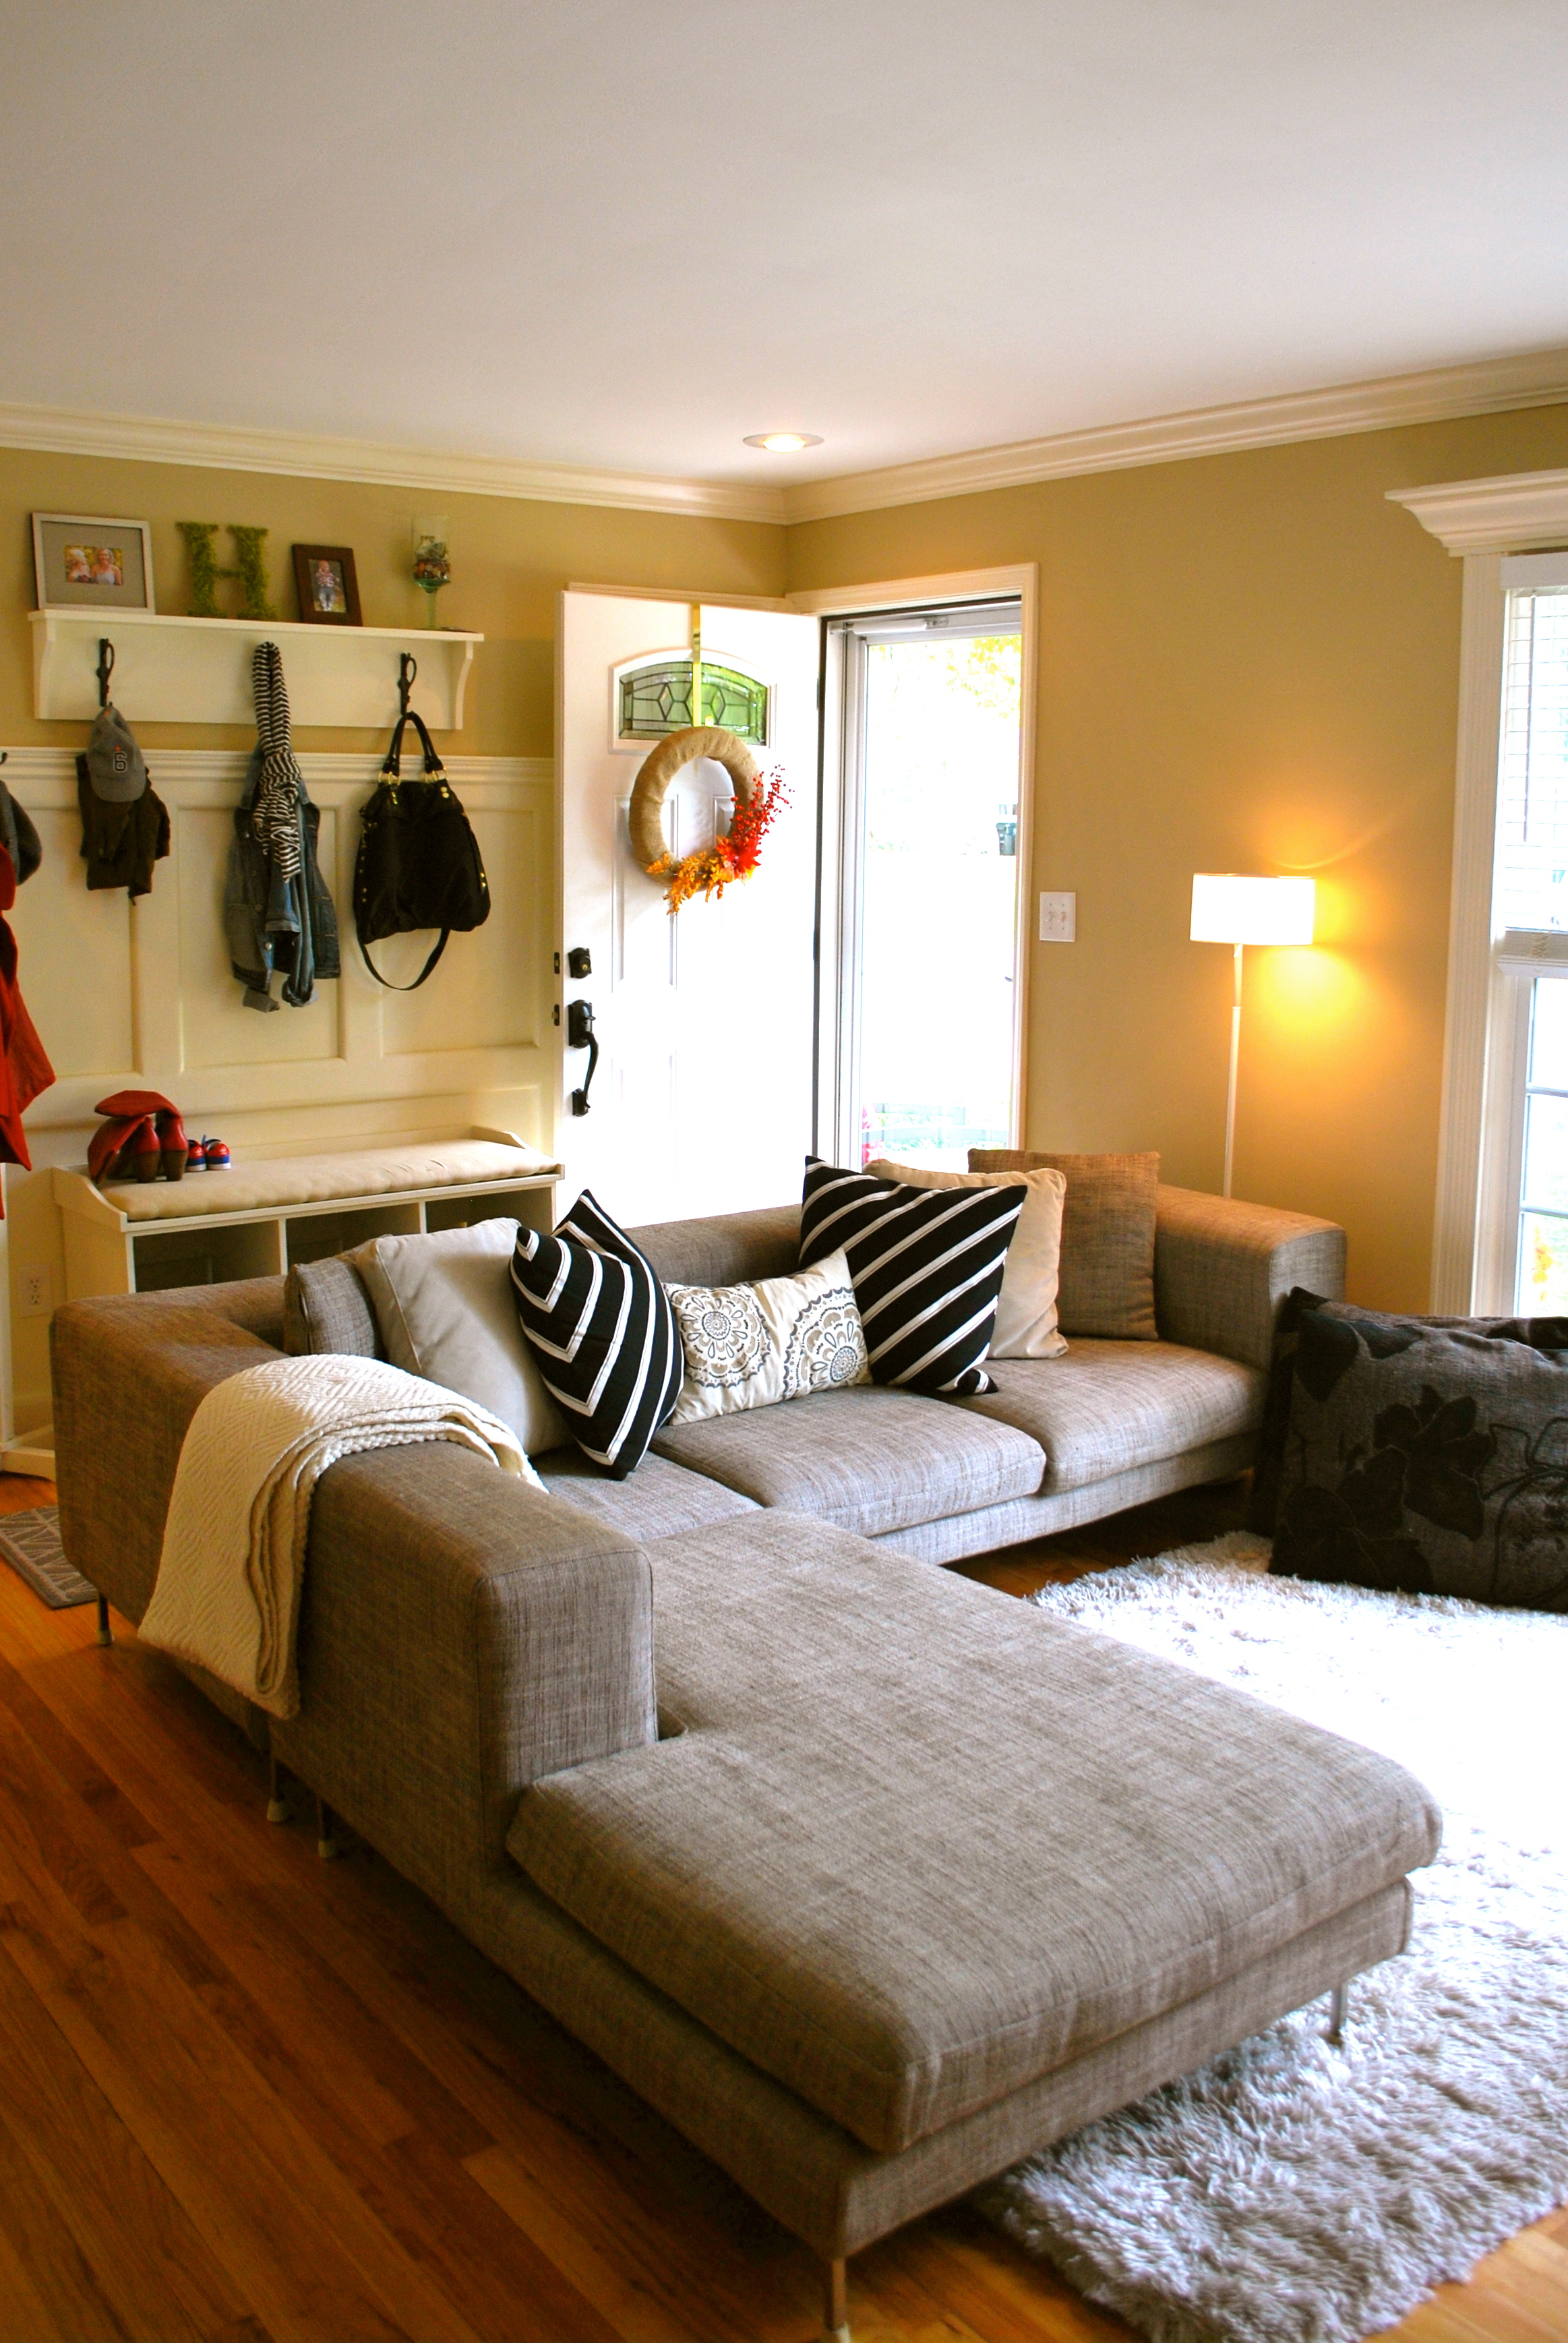 Living room design the suburban urbanist for How to design a living room